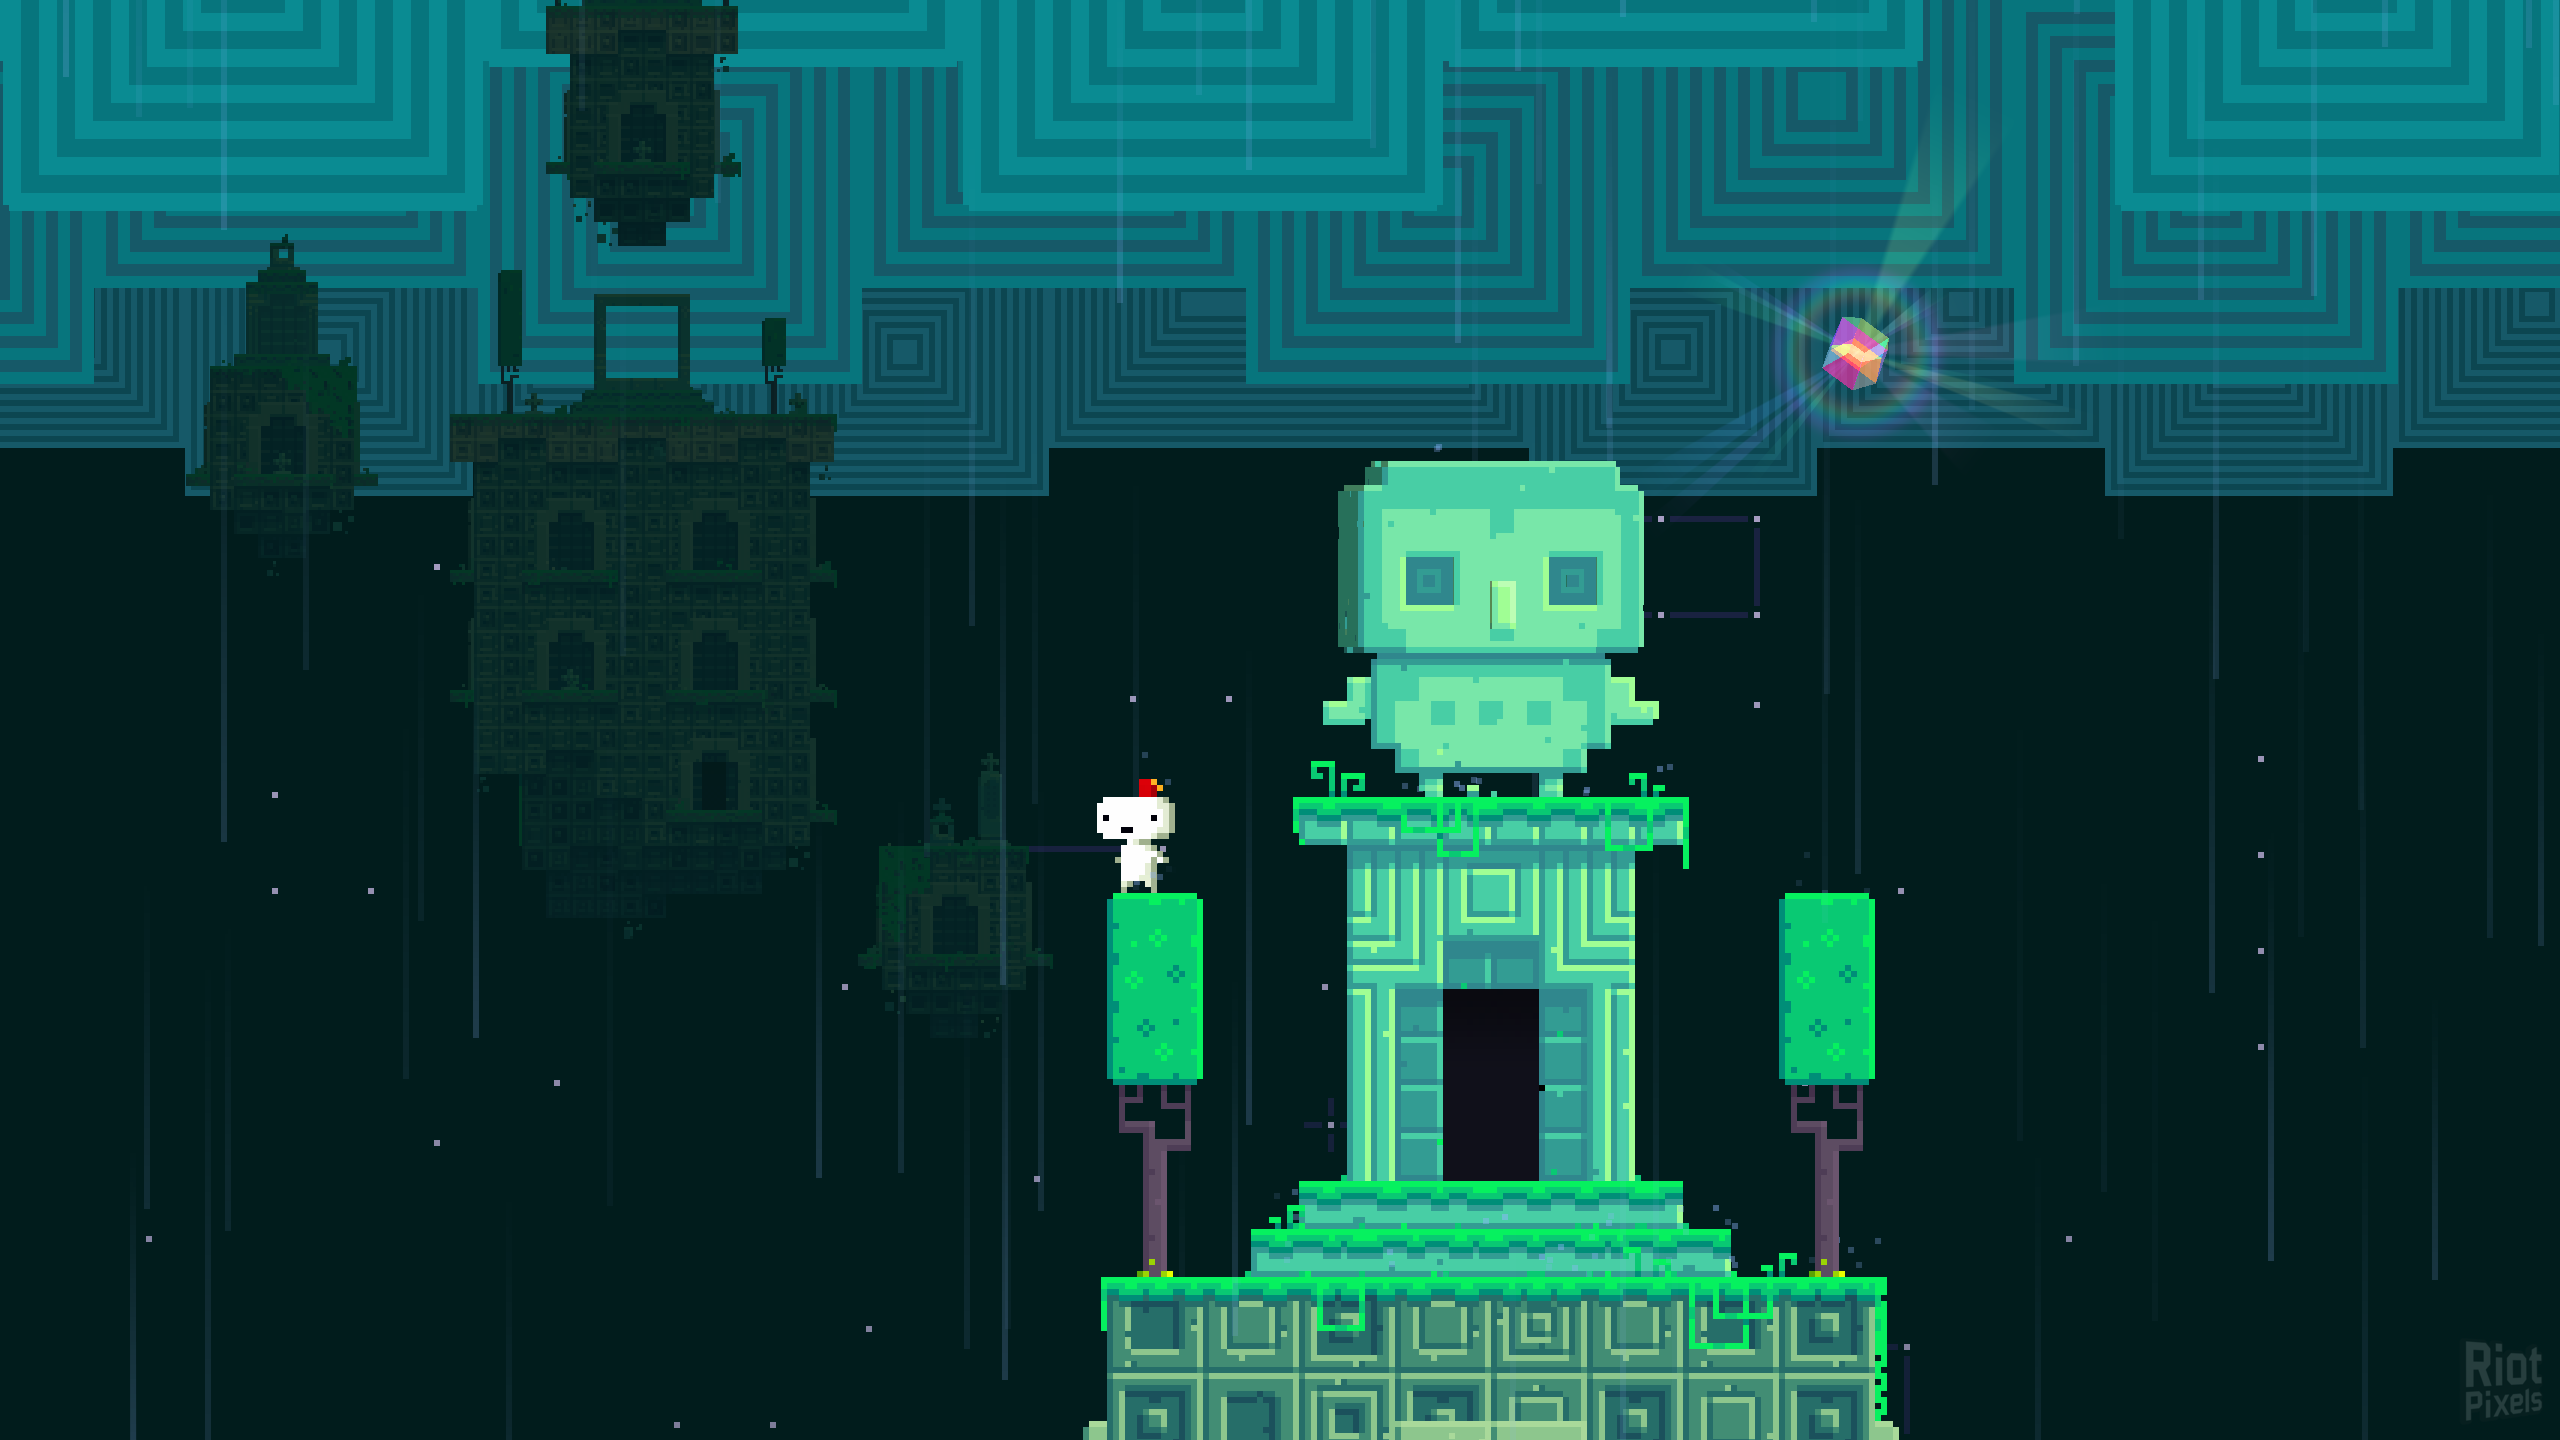 fez - game screenshot at riot pixels